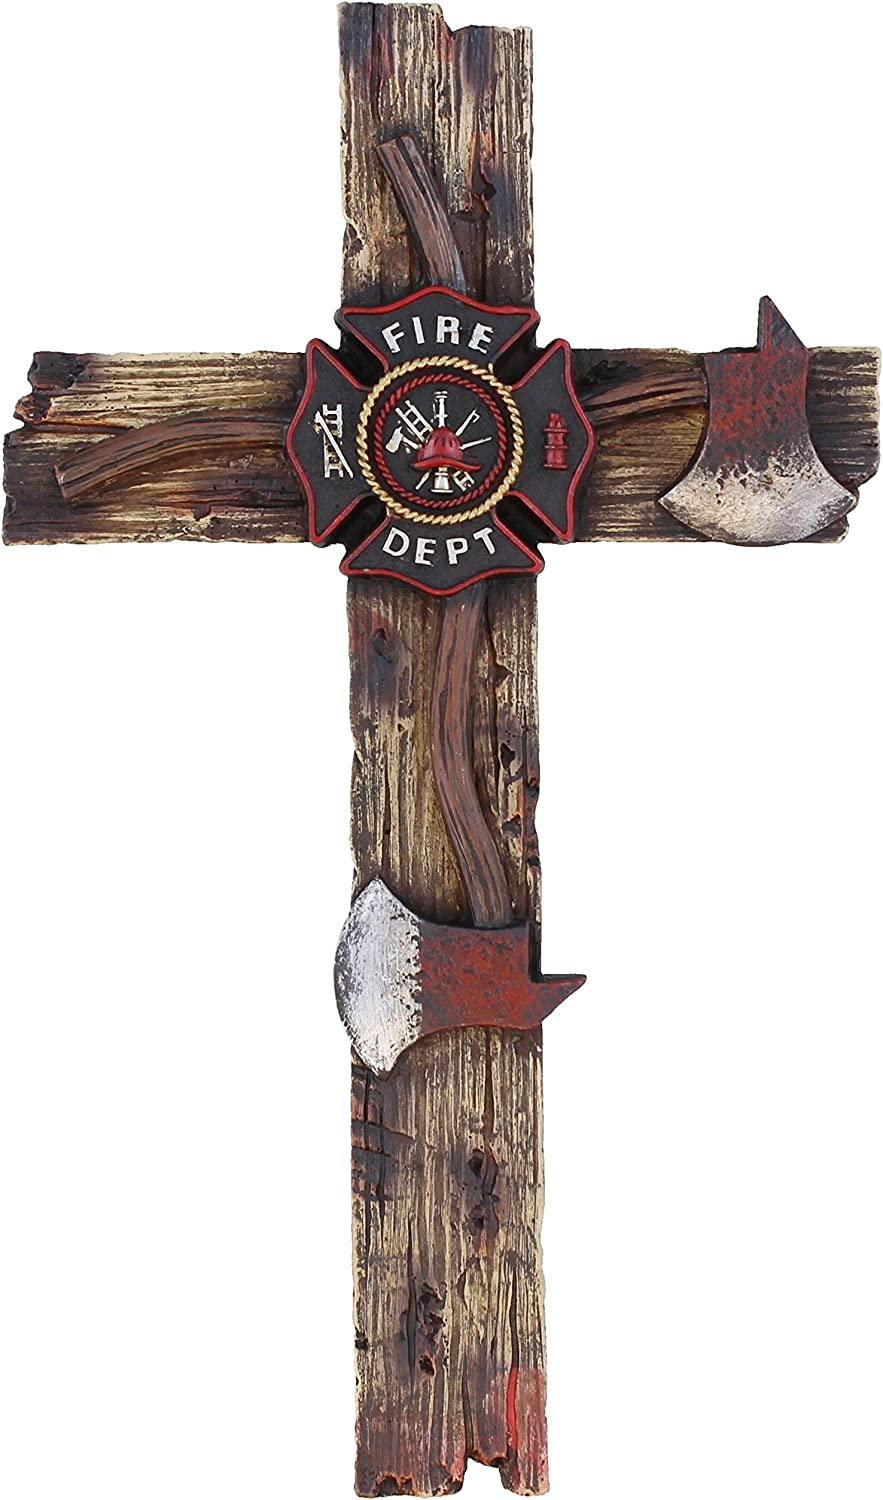 "Colors of Rainbow Decorative Fire Department 12"" Wall Cross - Fireman Firefighter Axe Decor"